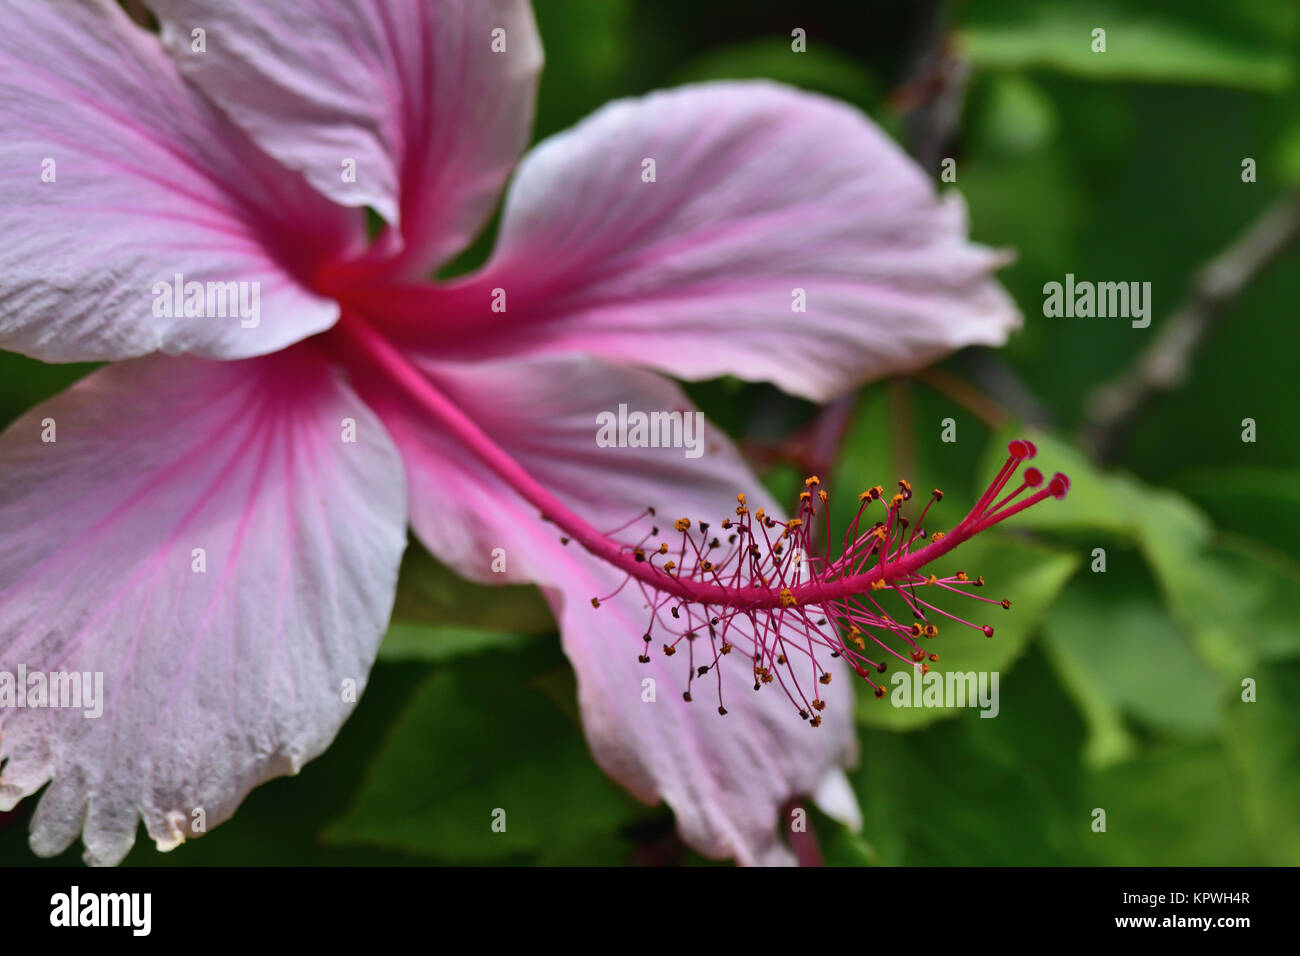 Hibiscus flowers photo stock photos hibiscus flowers photo stock australian pink hibiscus flowers stock image izmirmasajfo